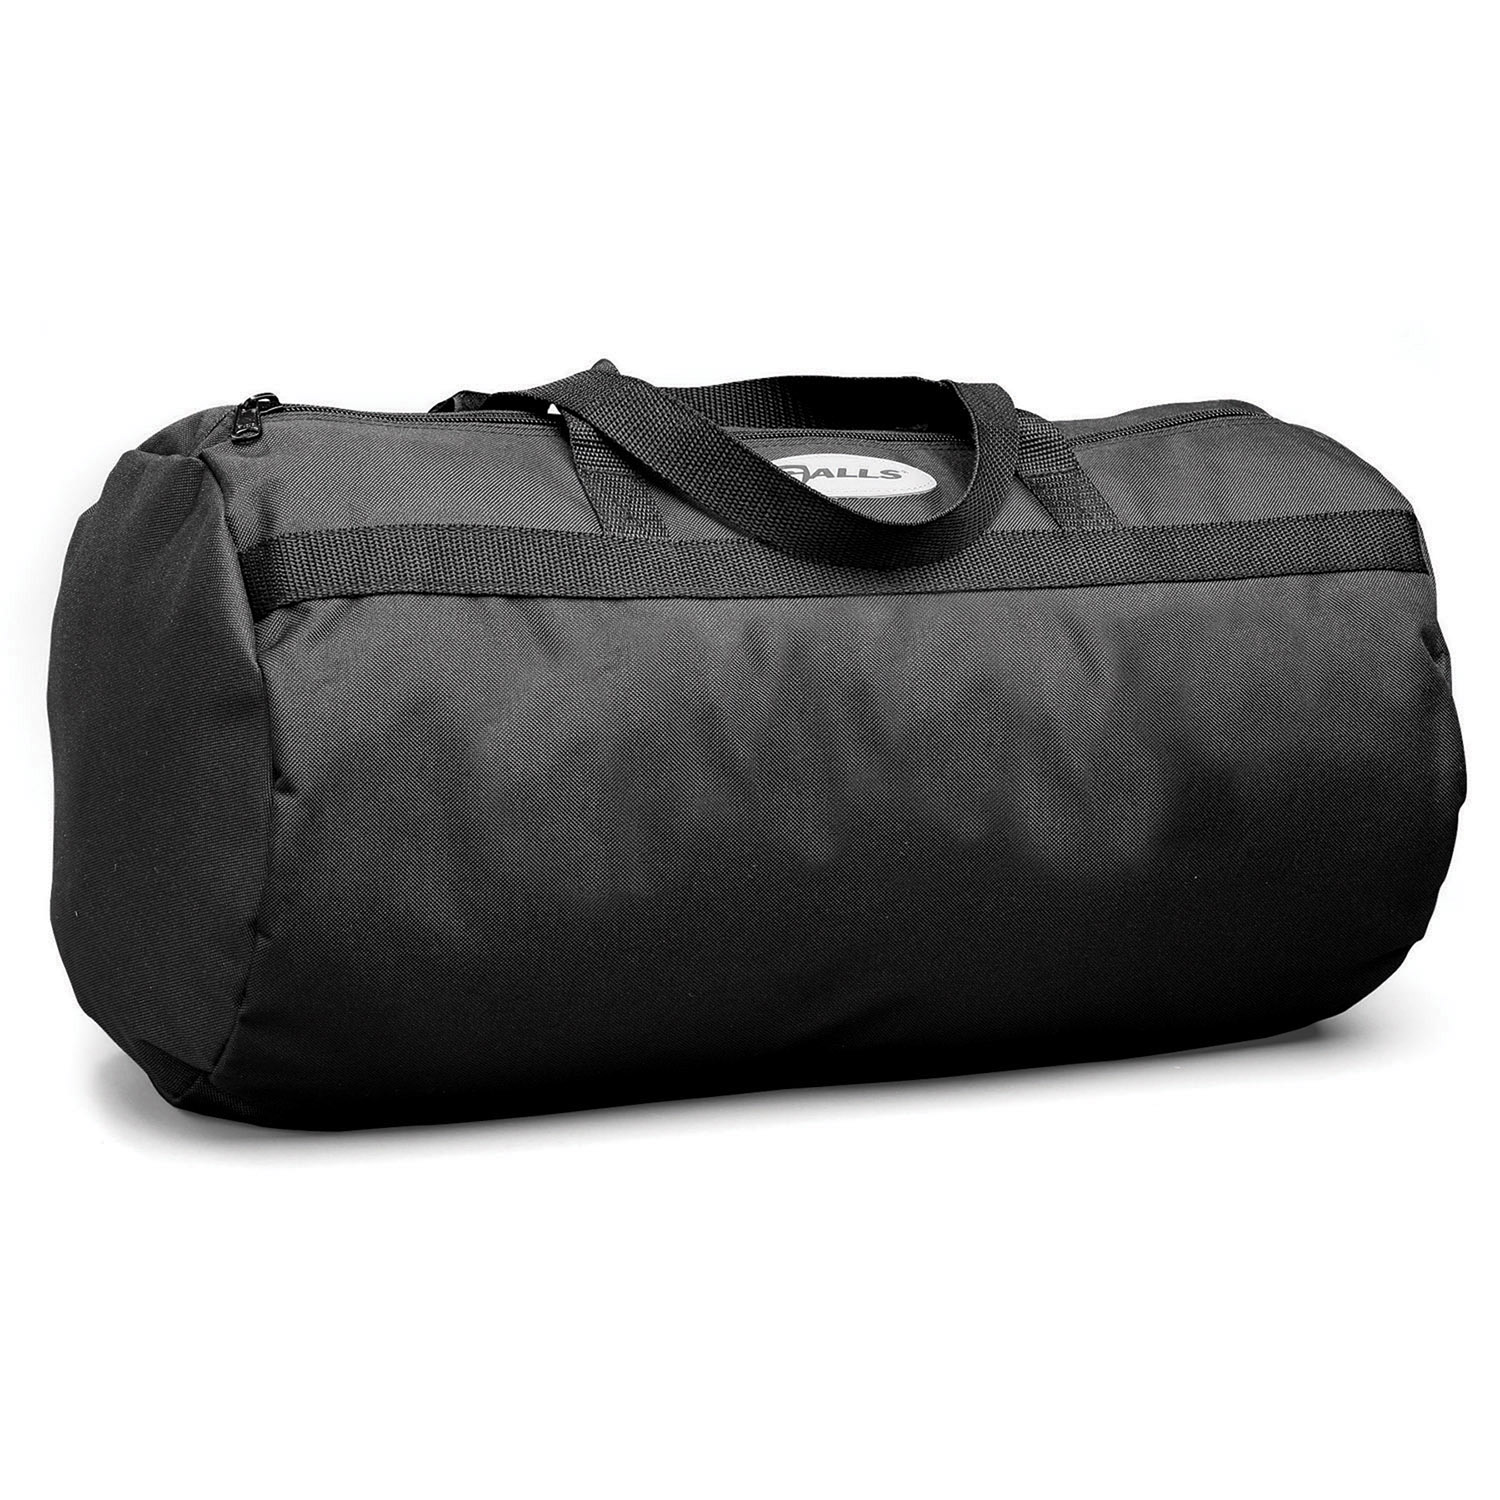 Galls Deluxe Barrel Bag